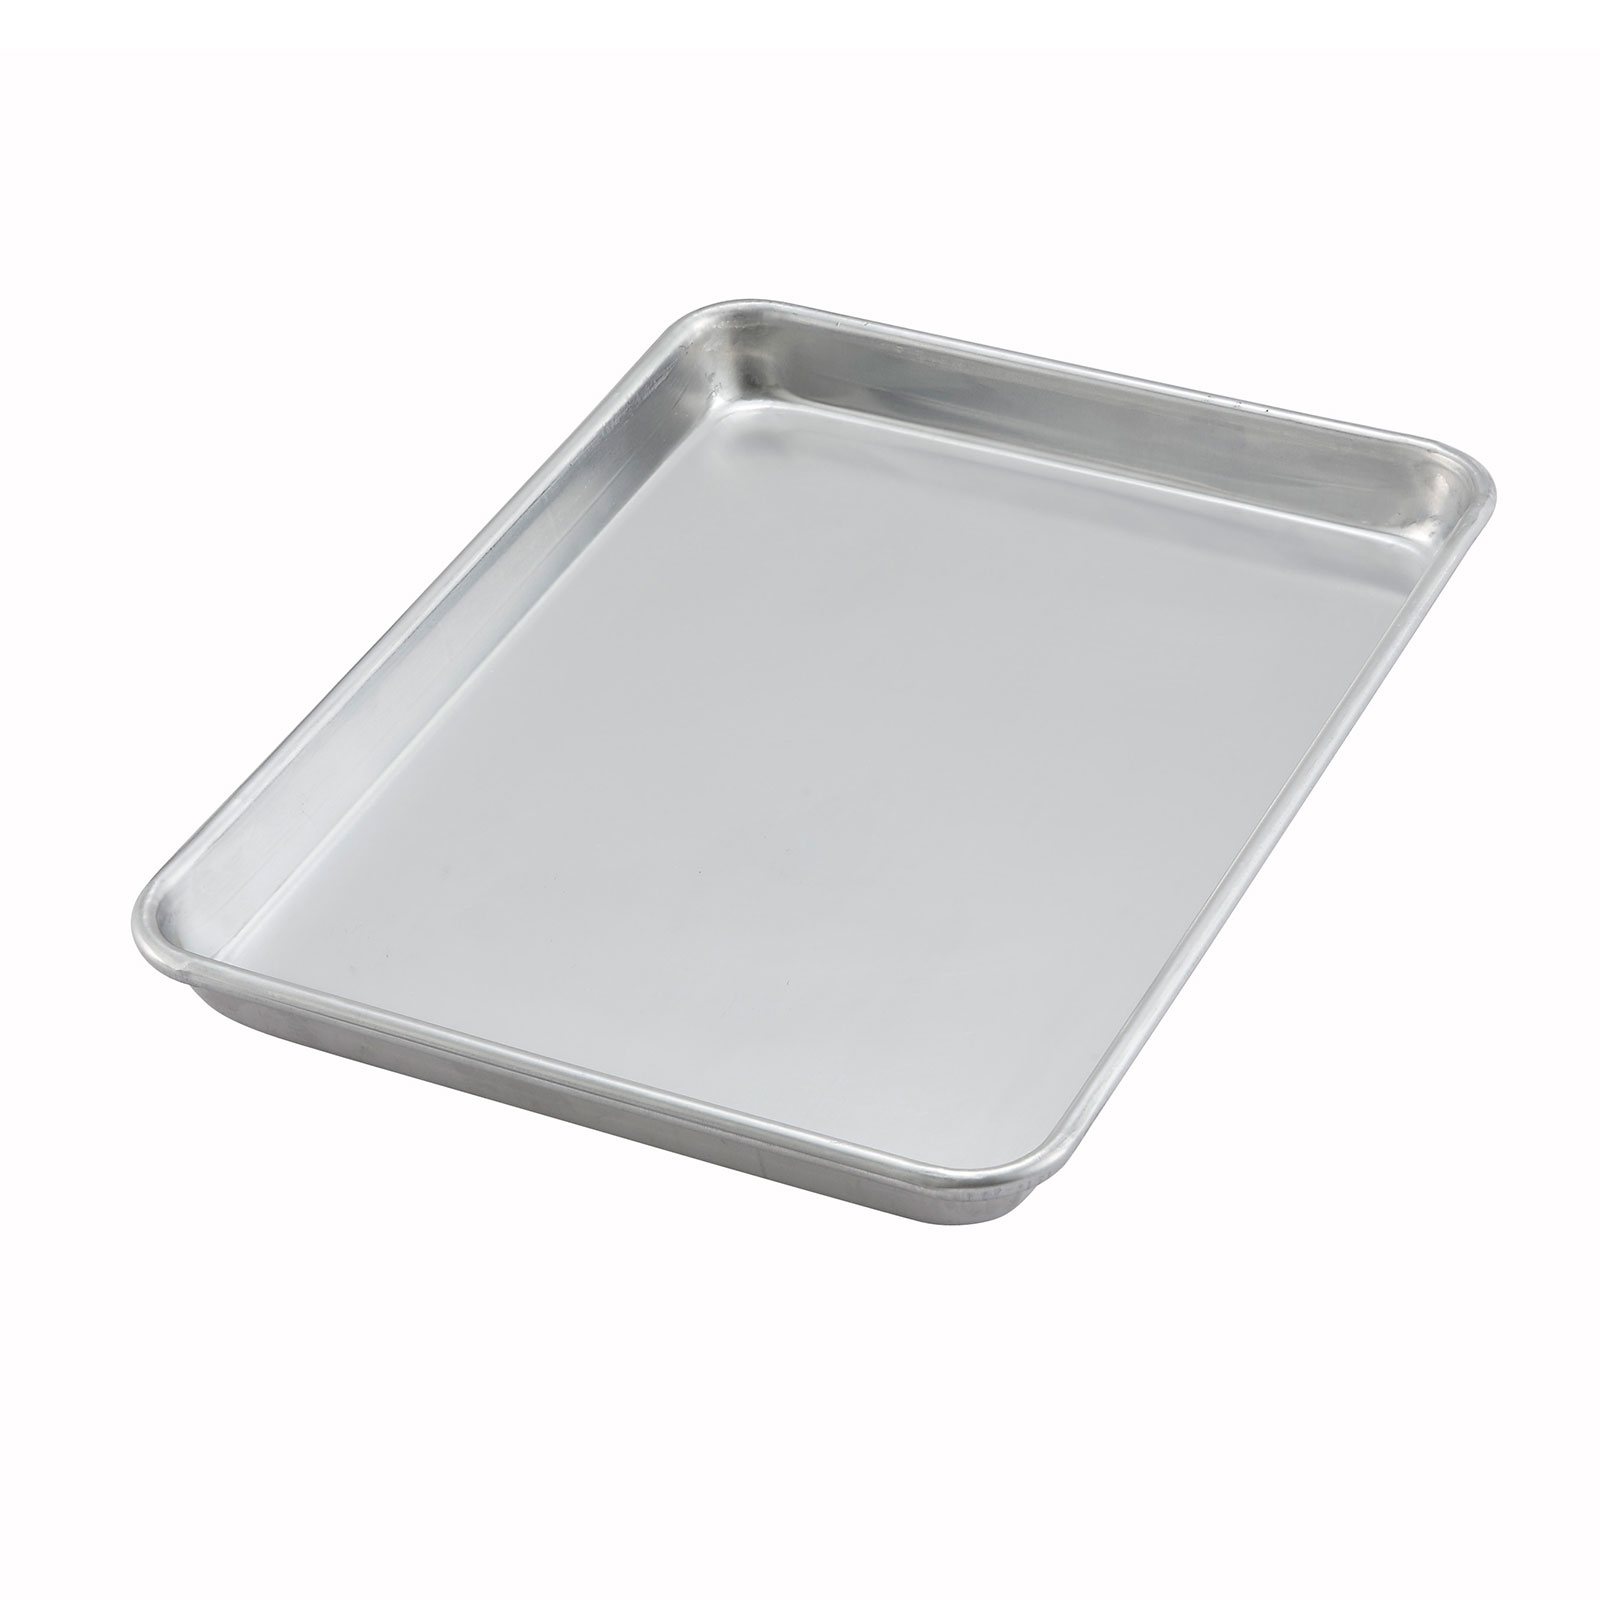 1800-02 Winco ALXP-1013 bun / sheet pan